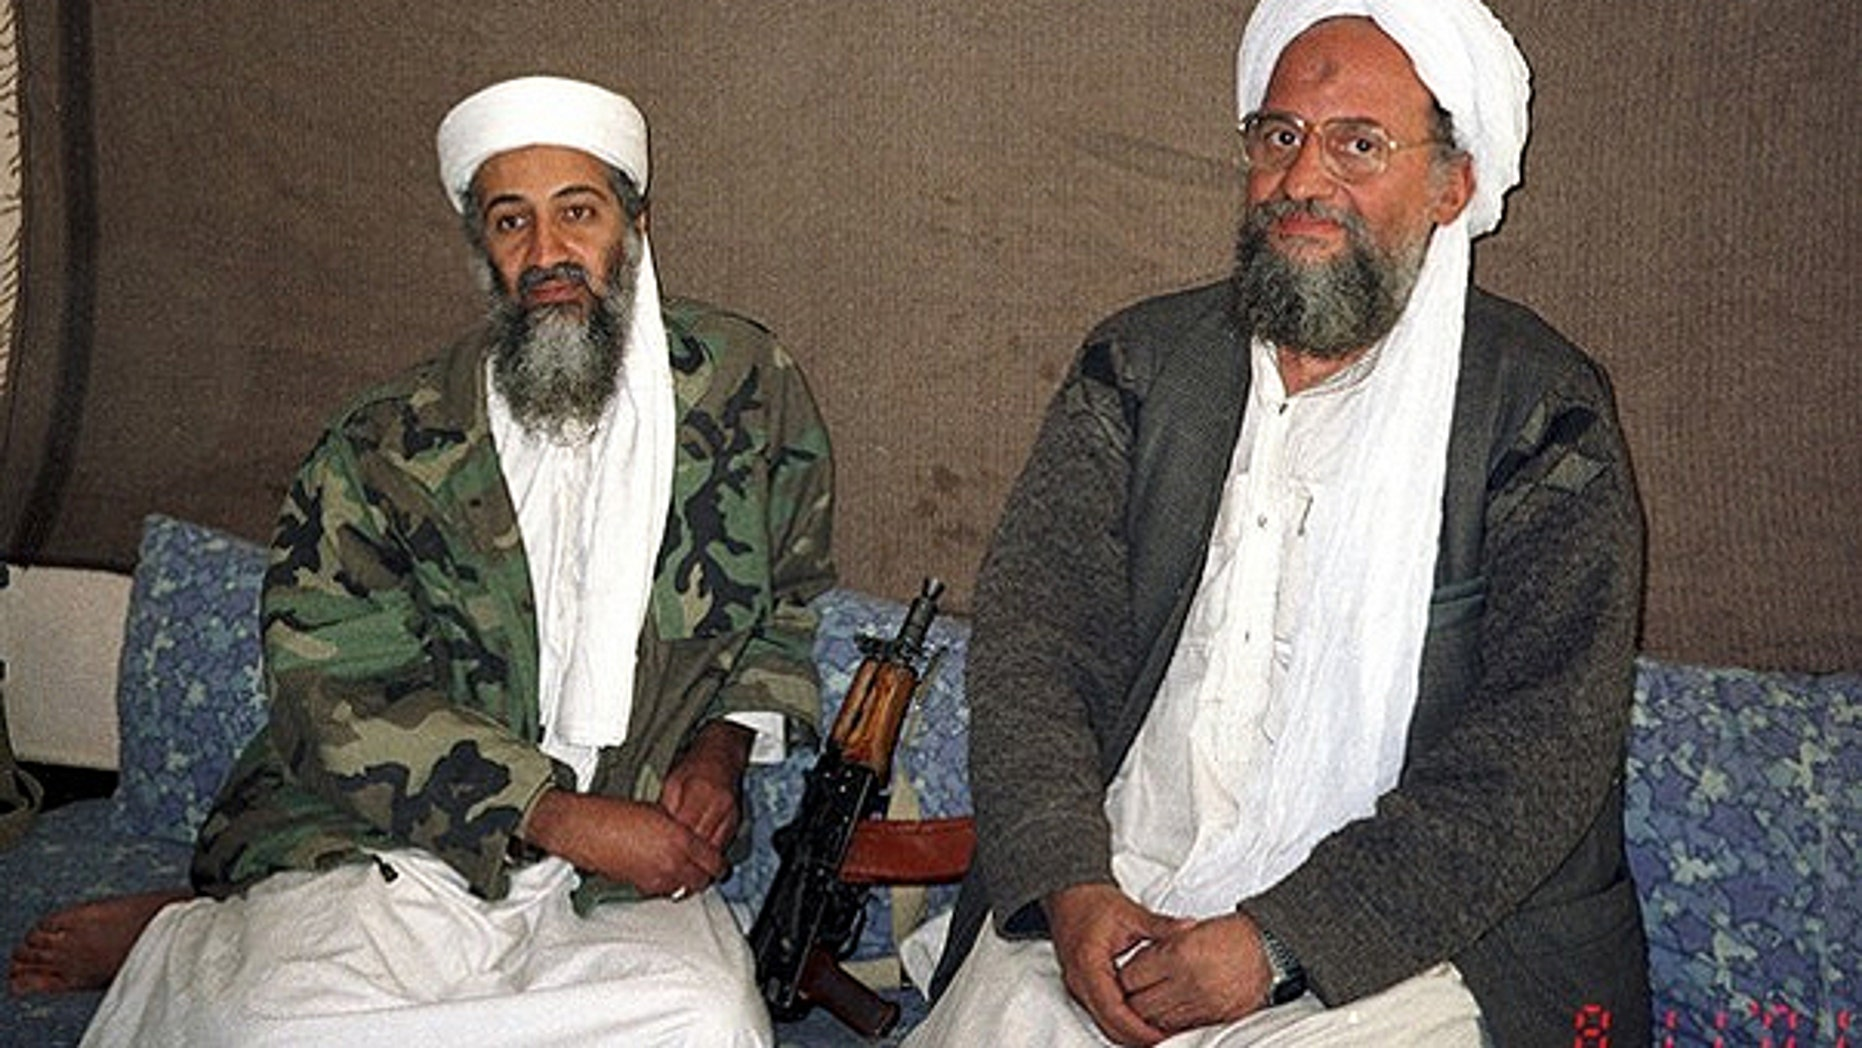 Nov. 10, 2001: Usama bin Laden sits with his adviser and purported successor Ayman al-Zawahiri, an Egyptian linked to the Al Qaeda network, during an interview with Pakistani journalist Hamid Mir (not pictured) in an image supplied by the respected Dawn newspaper.